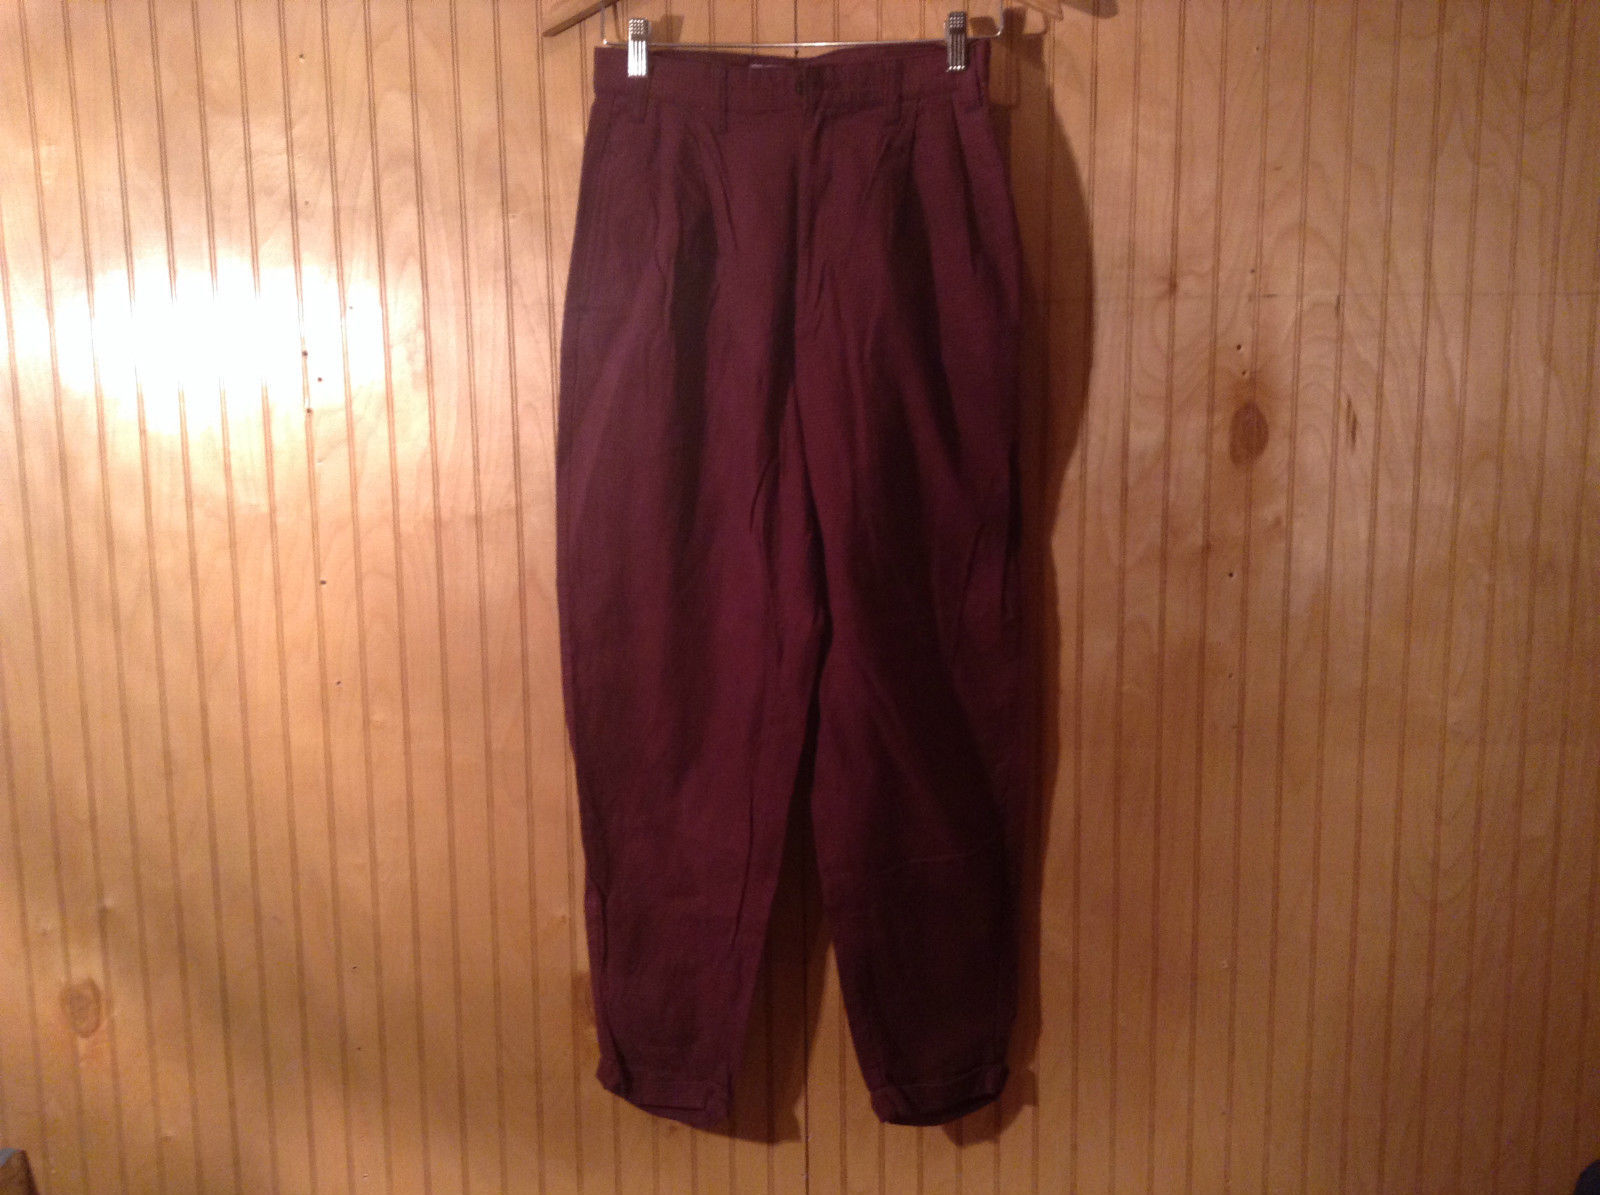 WV Outfitters Dark Red and Black Plaid Casual Pants Size 9 Button Zipper Closure